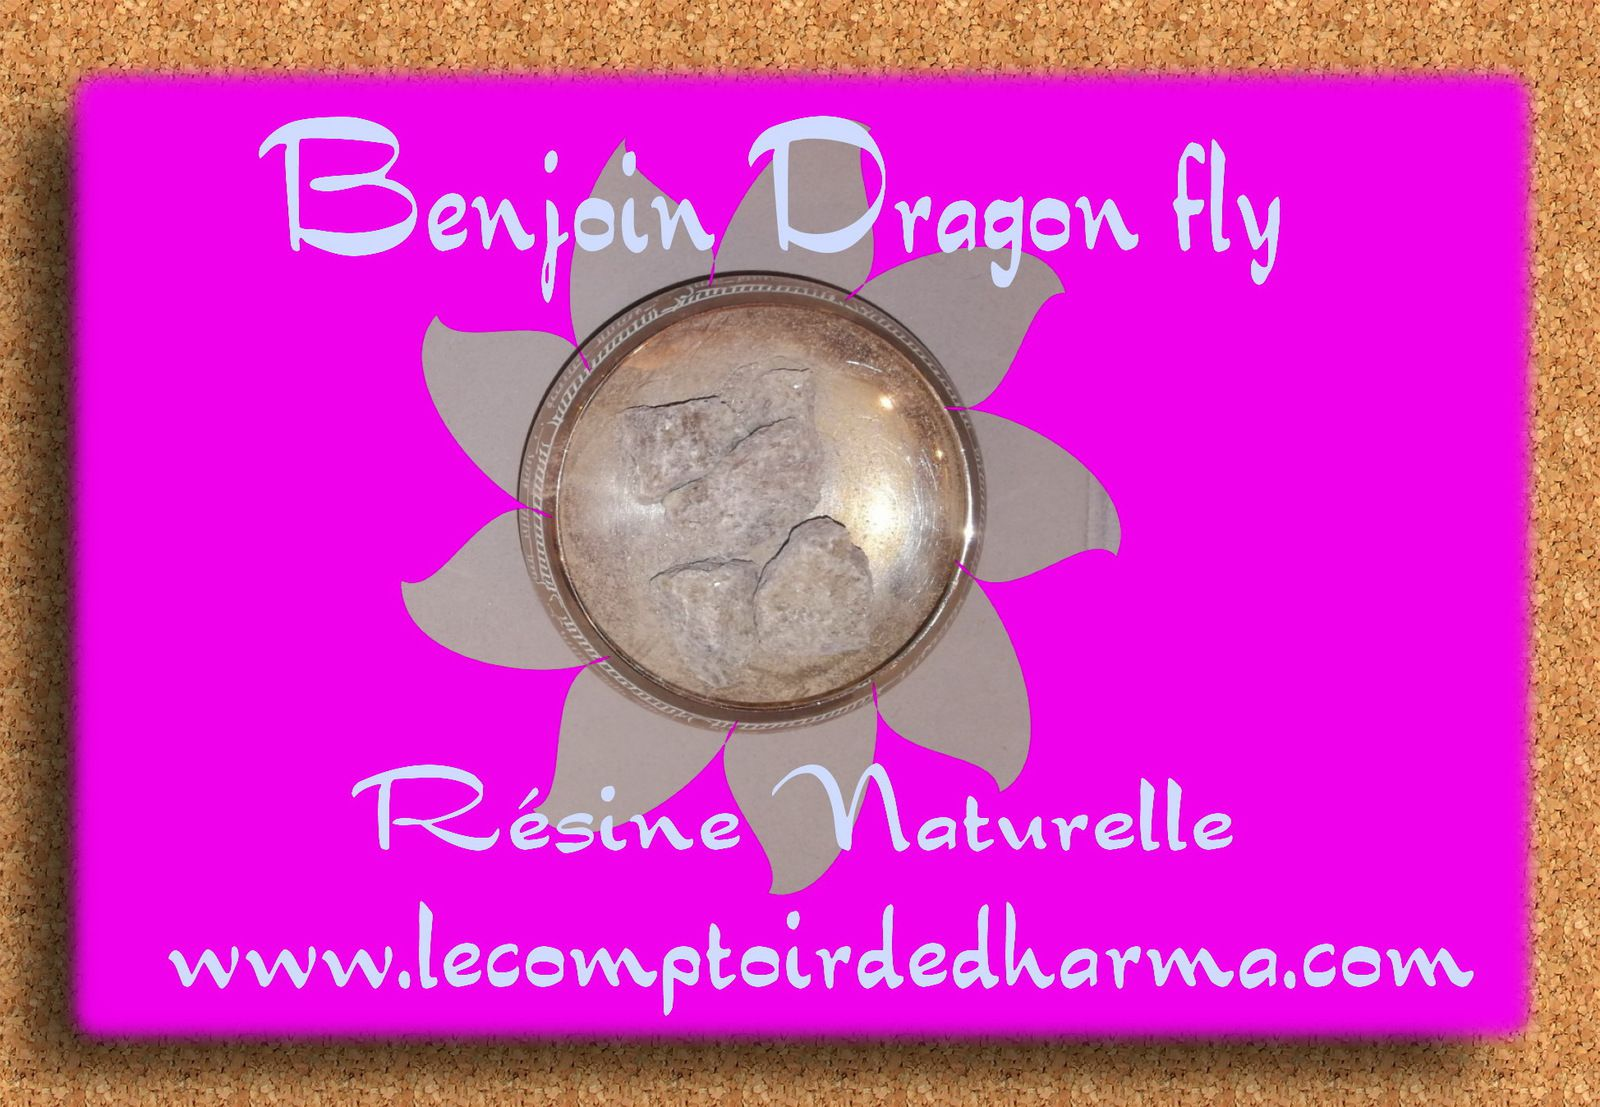 Benjoin Dragon Fly Résine Naturelle encens